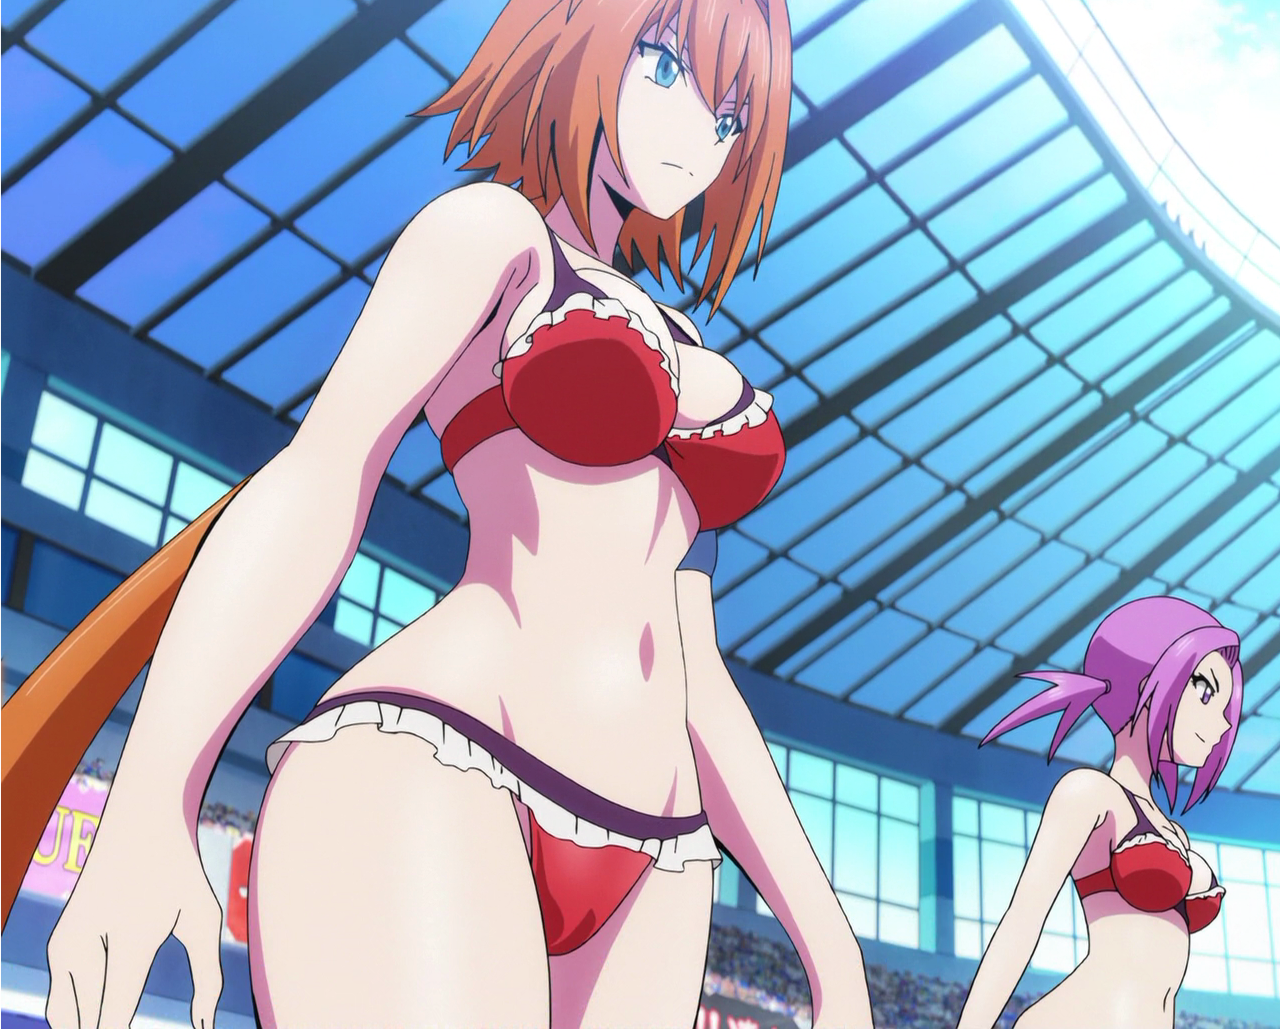 leopard-raws_keijo_-_08_raw_bs11_1280x720_x264_aac-mp4_002148-808_stitch